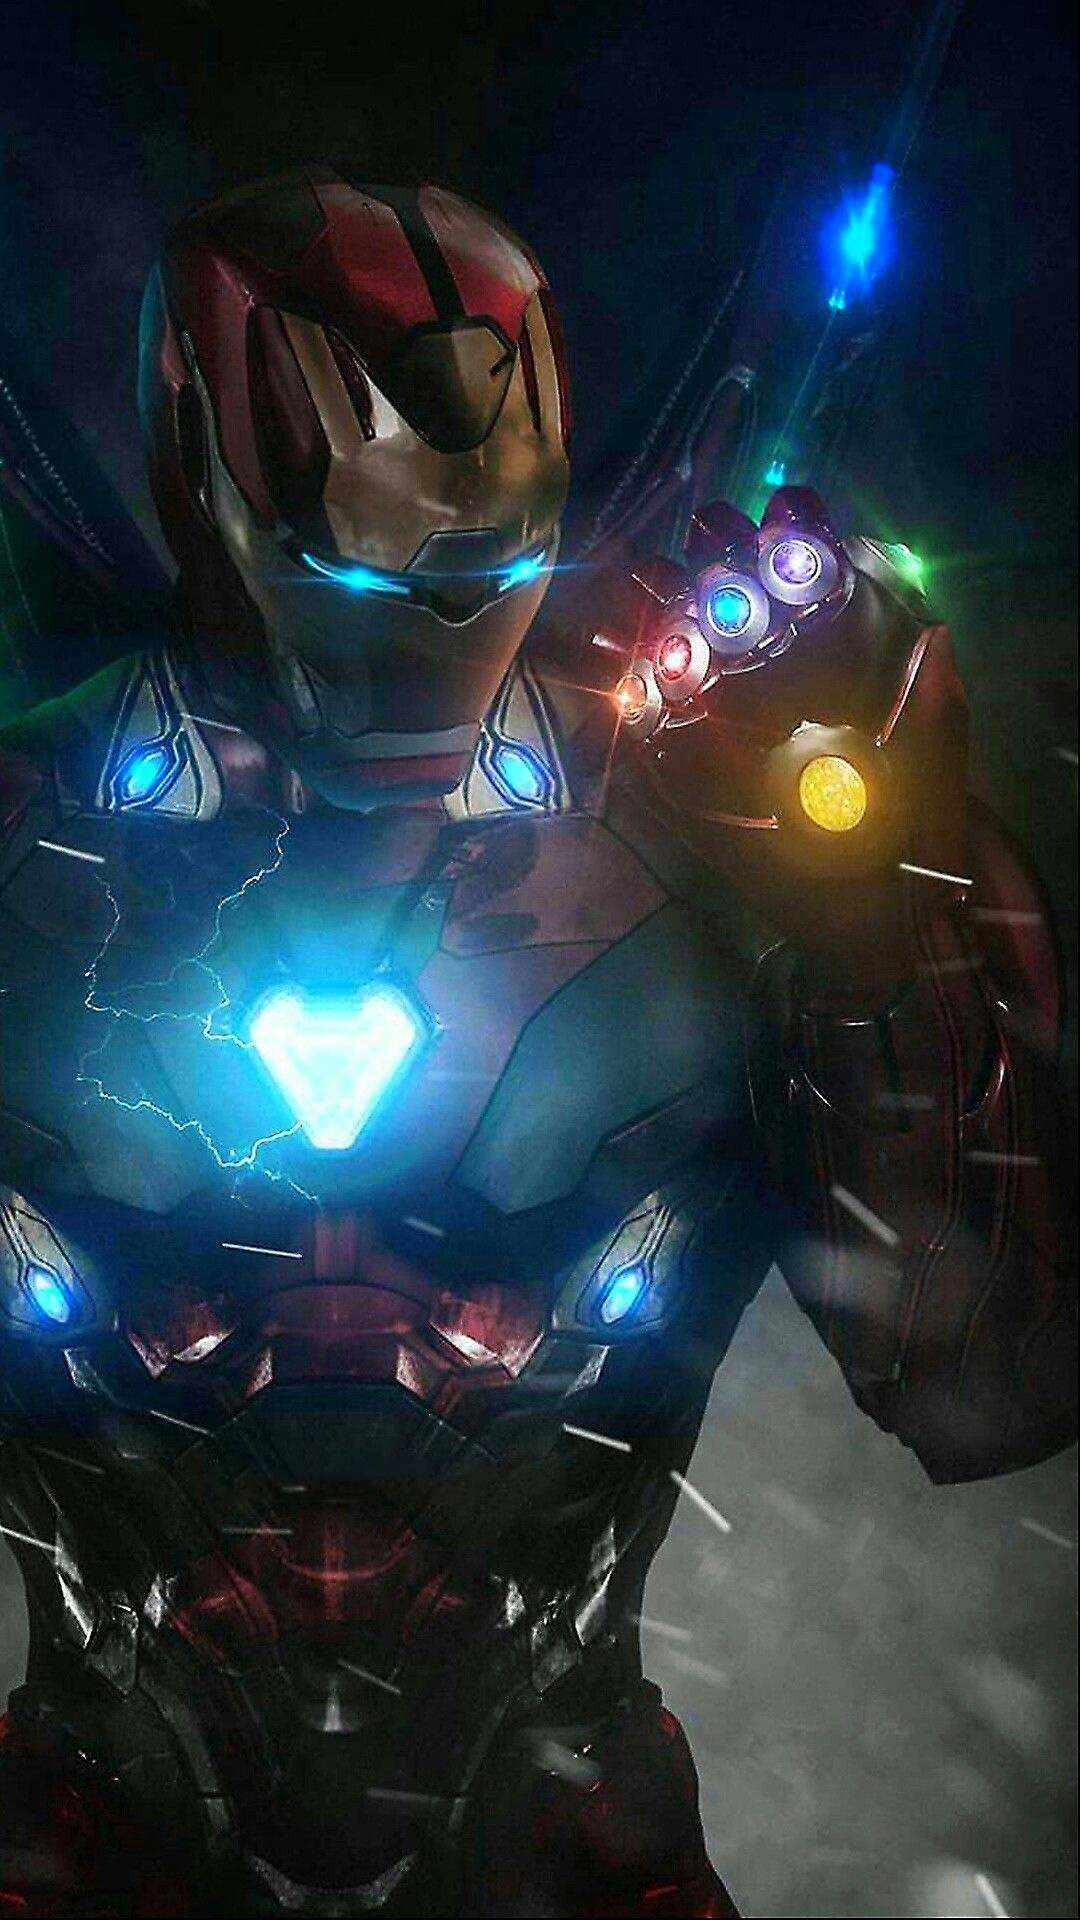 The Iron Man ENDGAME Fate Concludes After A 10 Year Journey 1080x1920